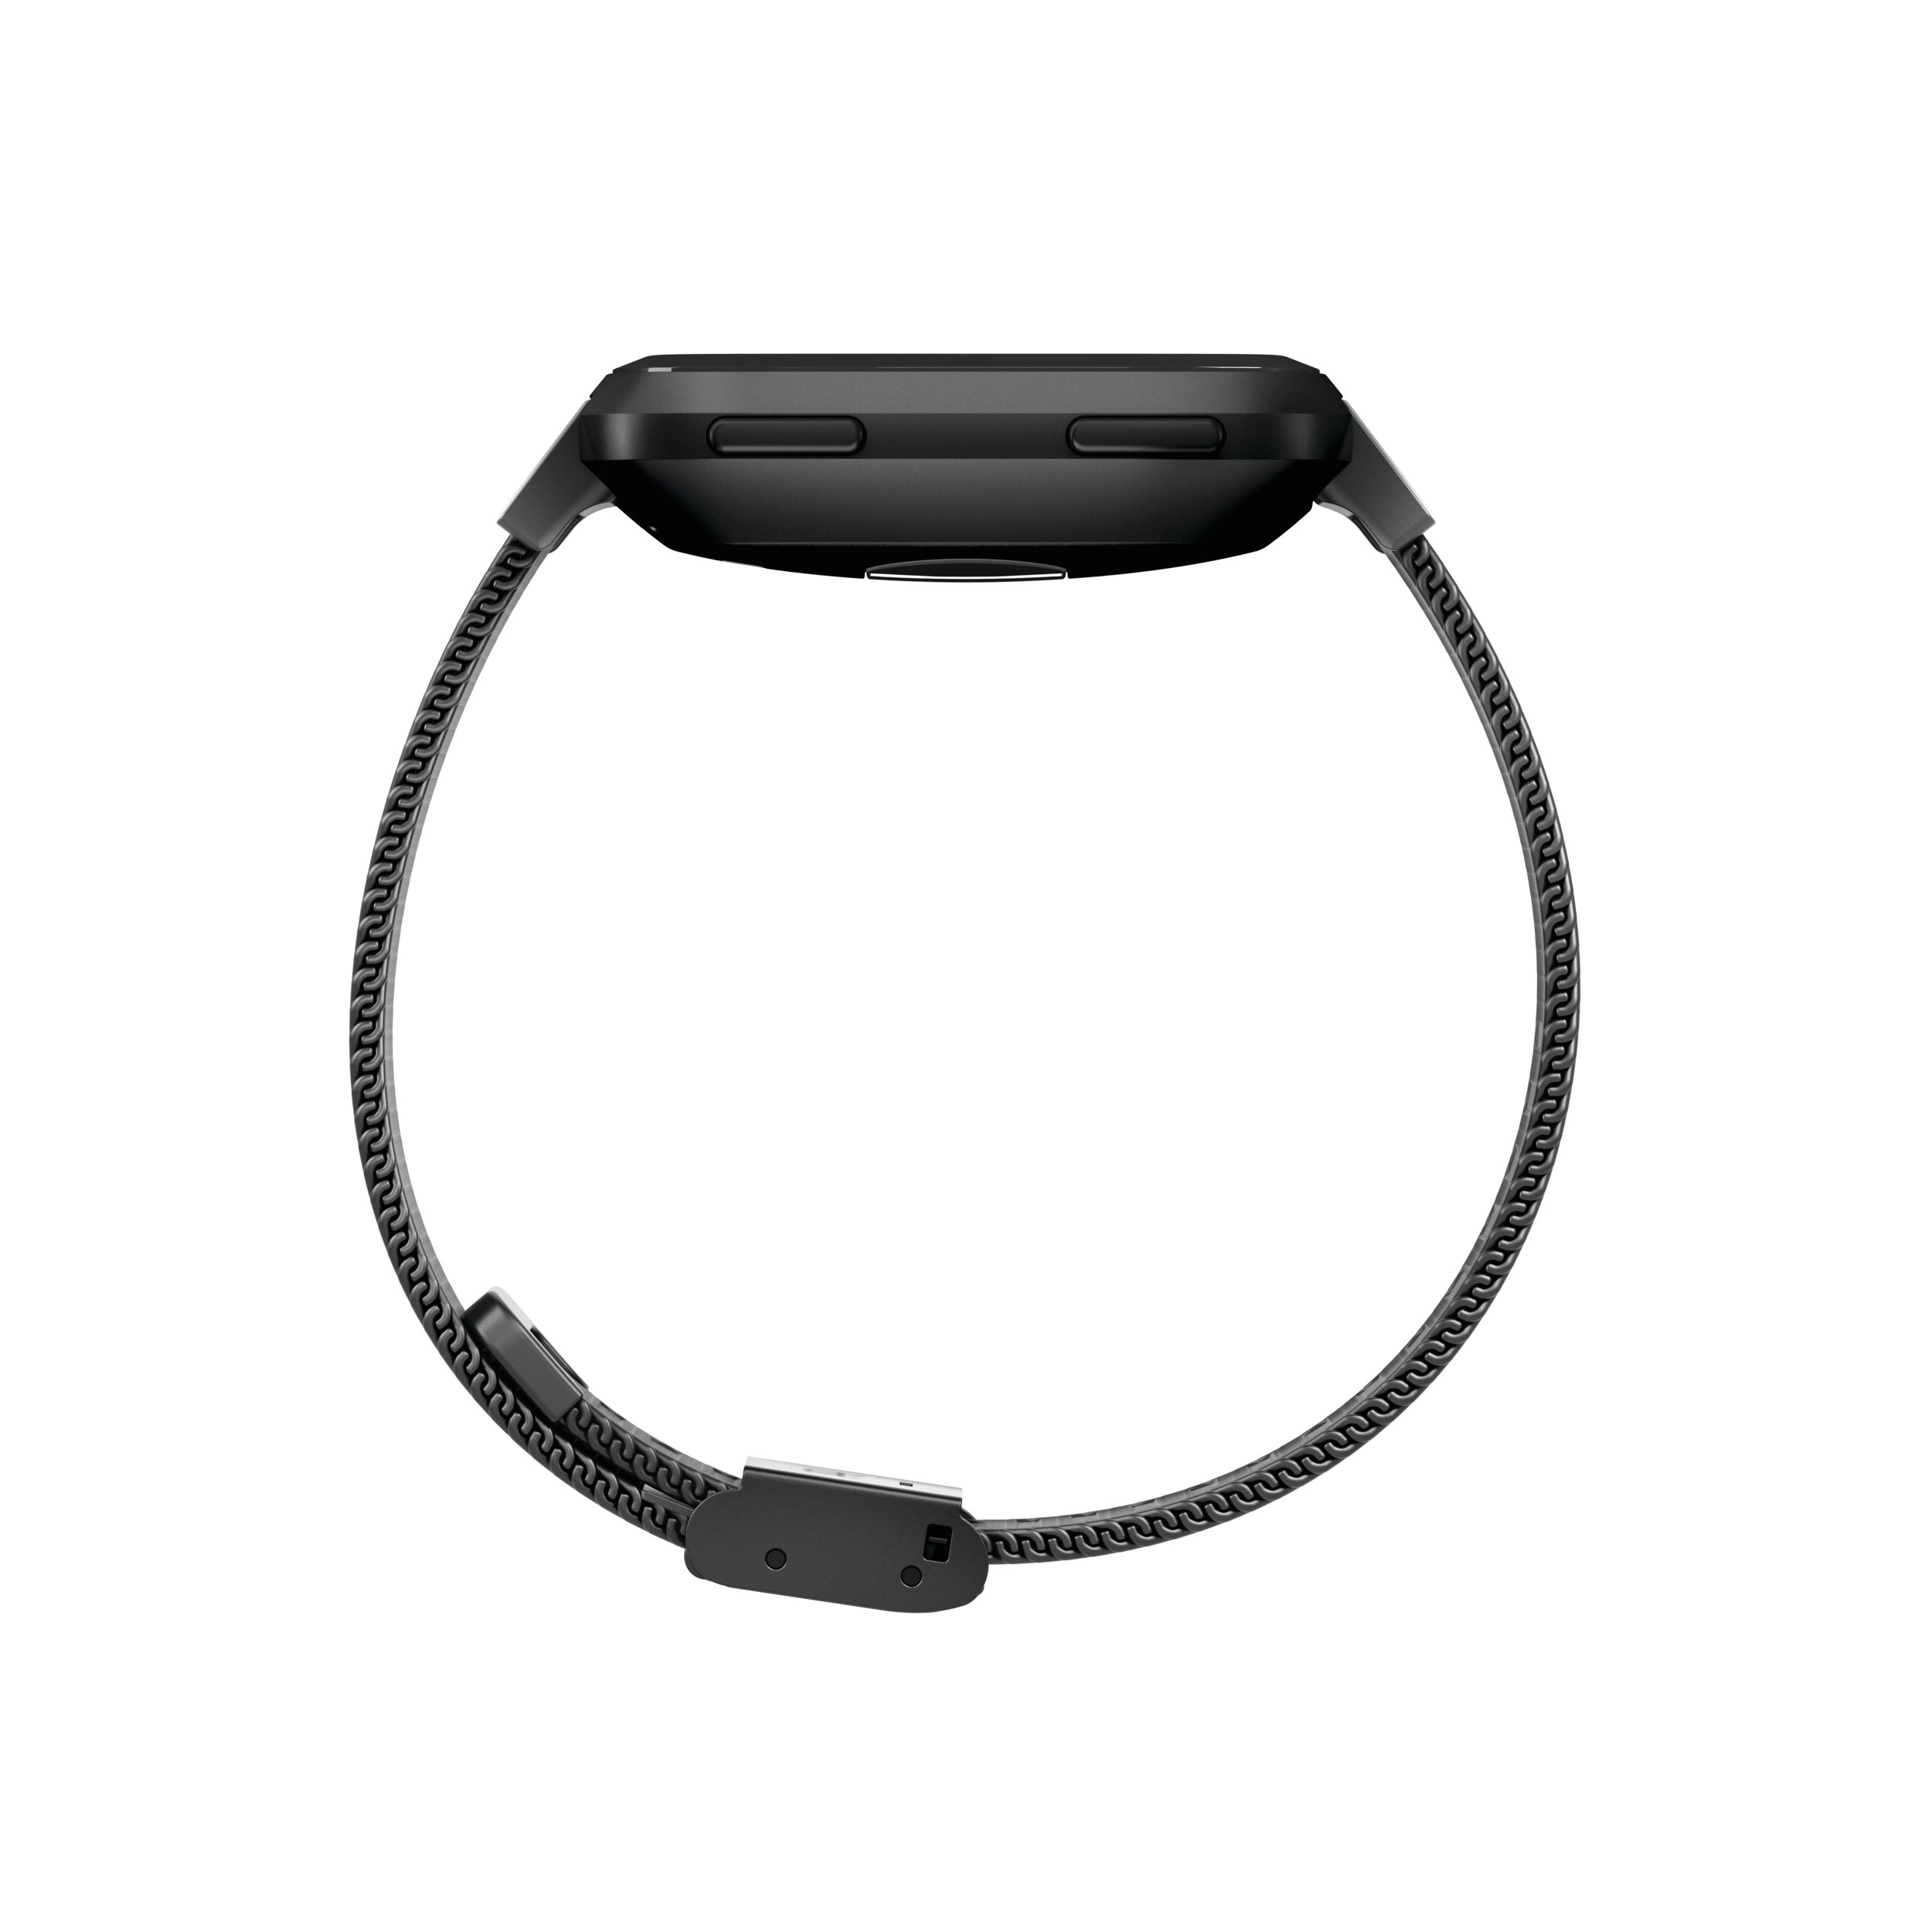 Fitbit Versa Family Accessory Band, Official Fitbit Product, Stainless Steel Mesh, Black, One Size by Fitbit (Image #3)